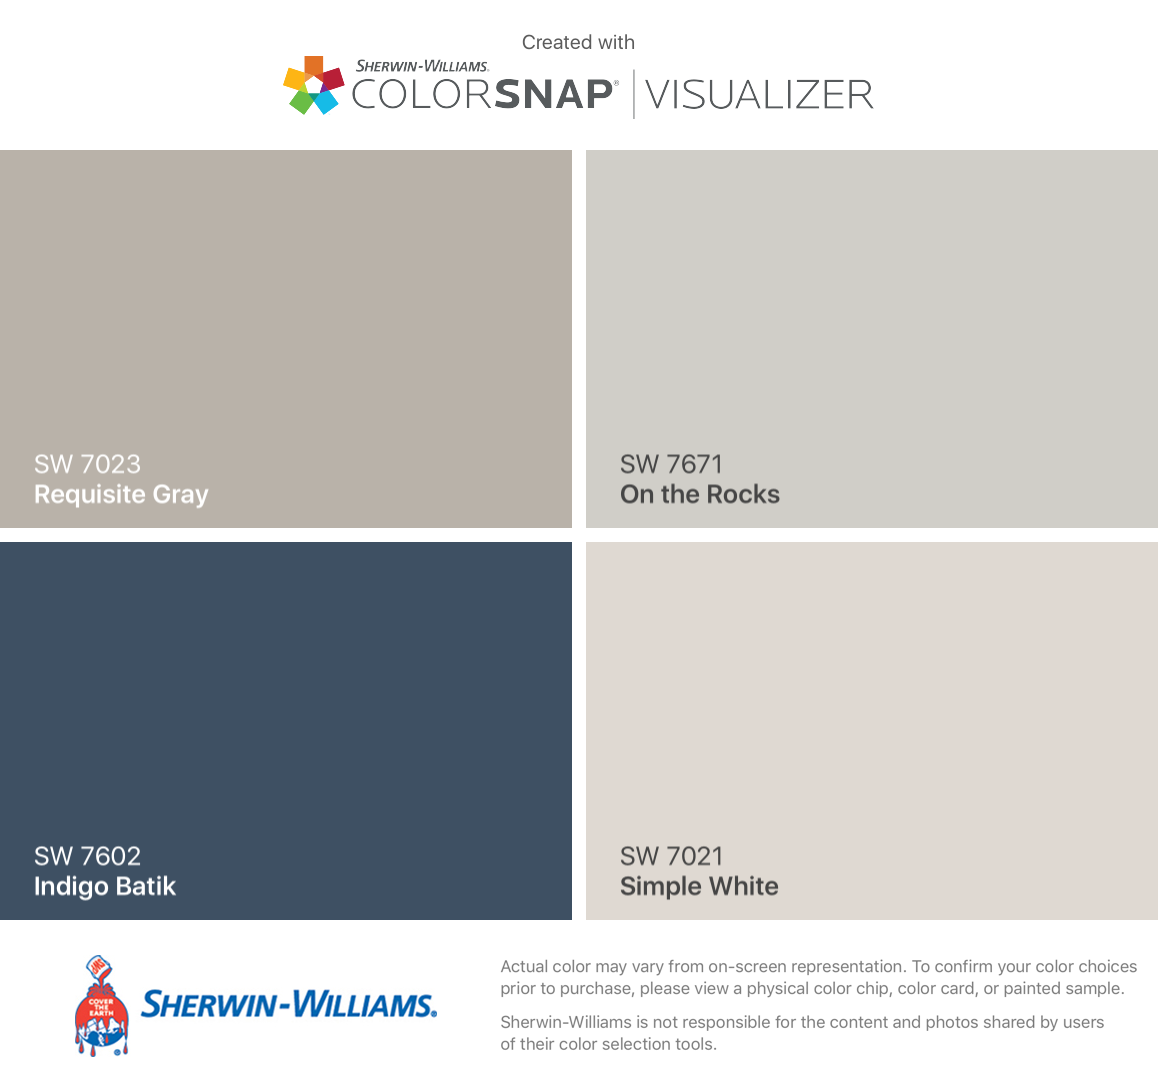 7018 dovetail sherwin williams - I Found These Colors With Colorsnap Visualizer For Iphone By Sherwin Williams Requisite